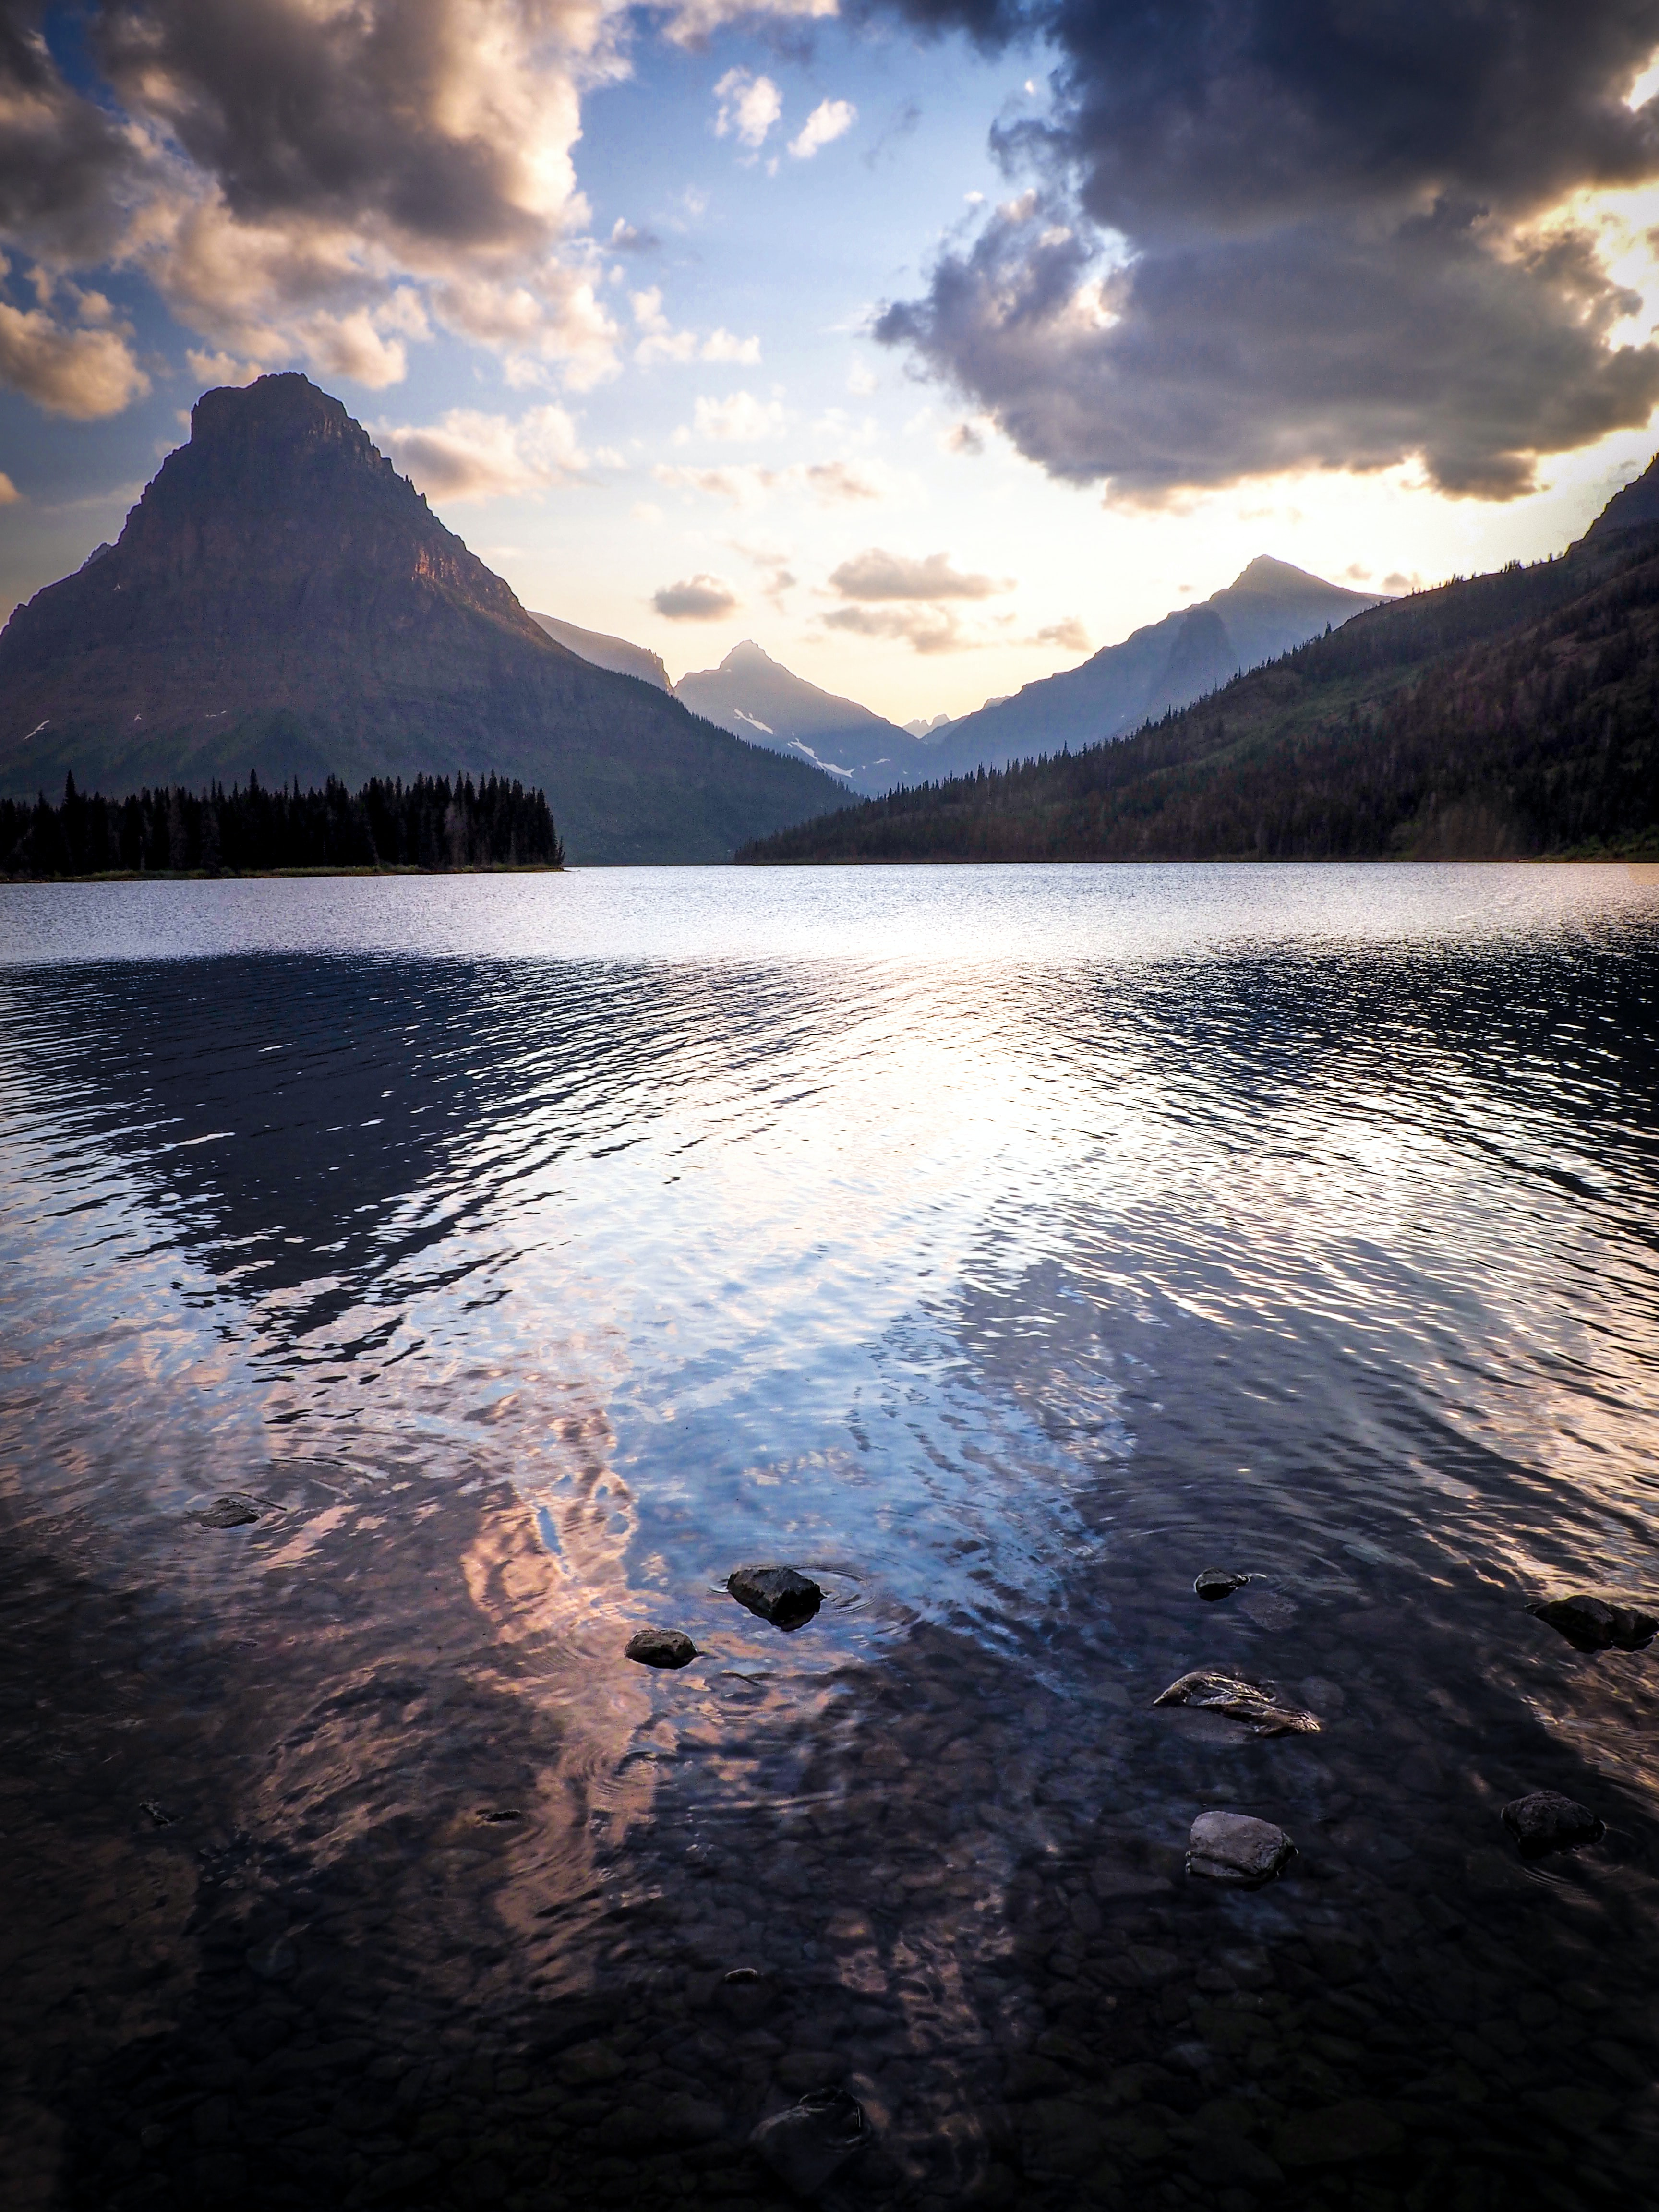 landscape photo of body of water surrounded by mountains